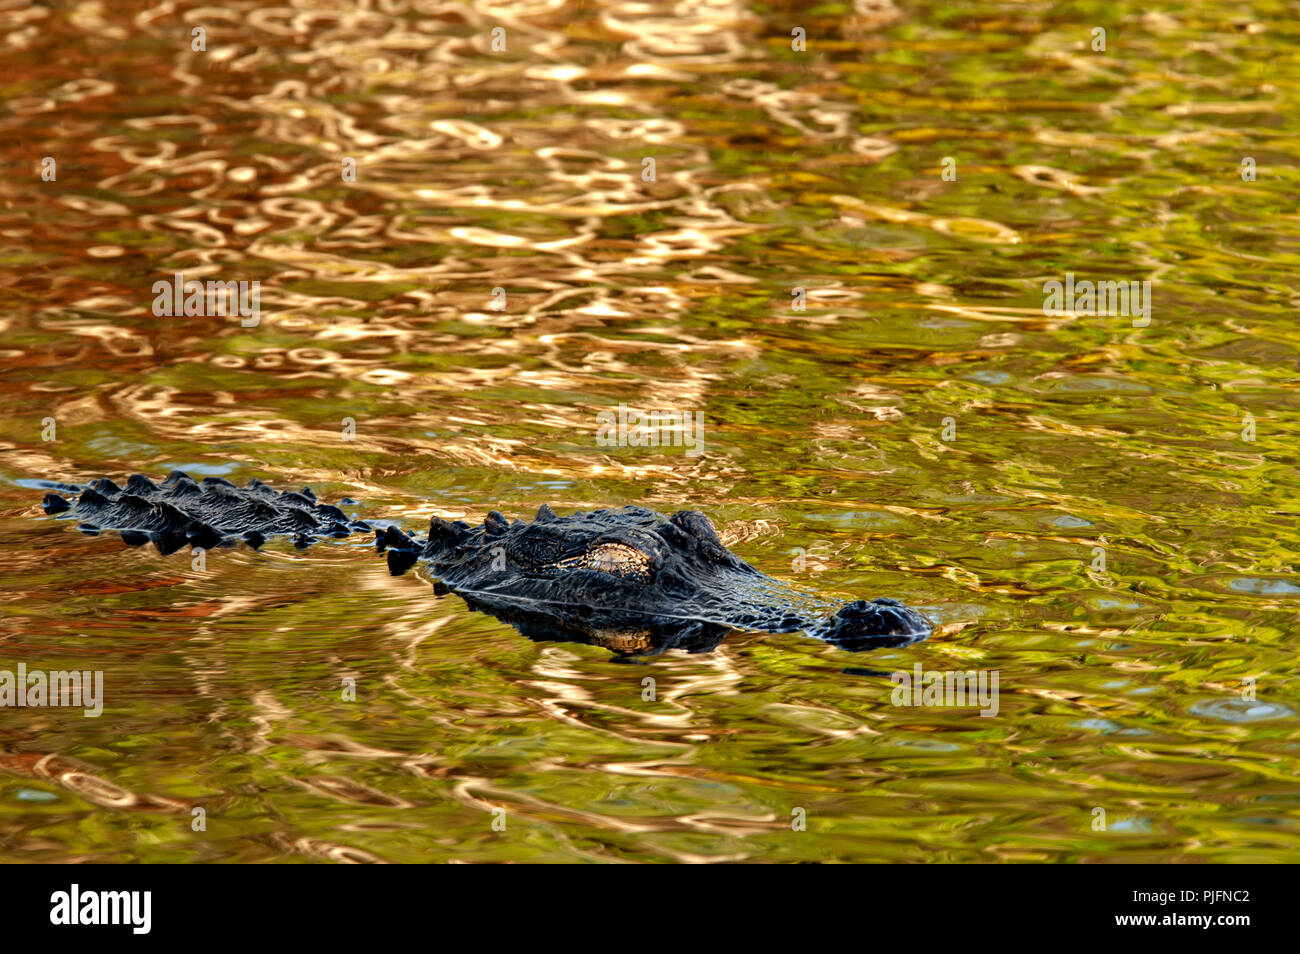 An American alligator with a golden eye floats on the surface of colorful shiny water reflecting mangroves and plants in the Everglades in Florida. - Stock Image